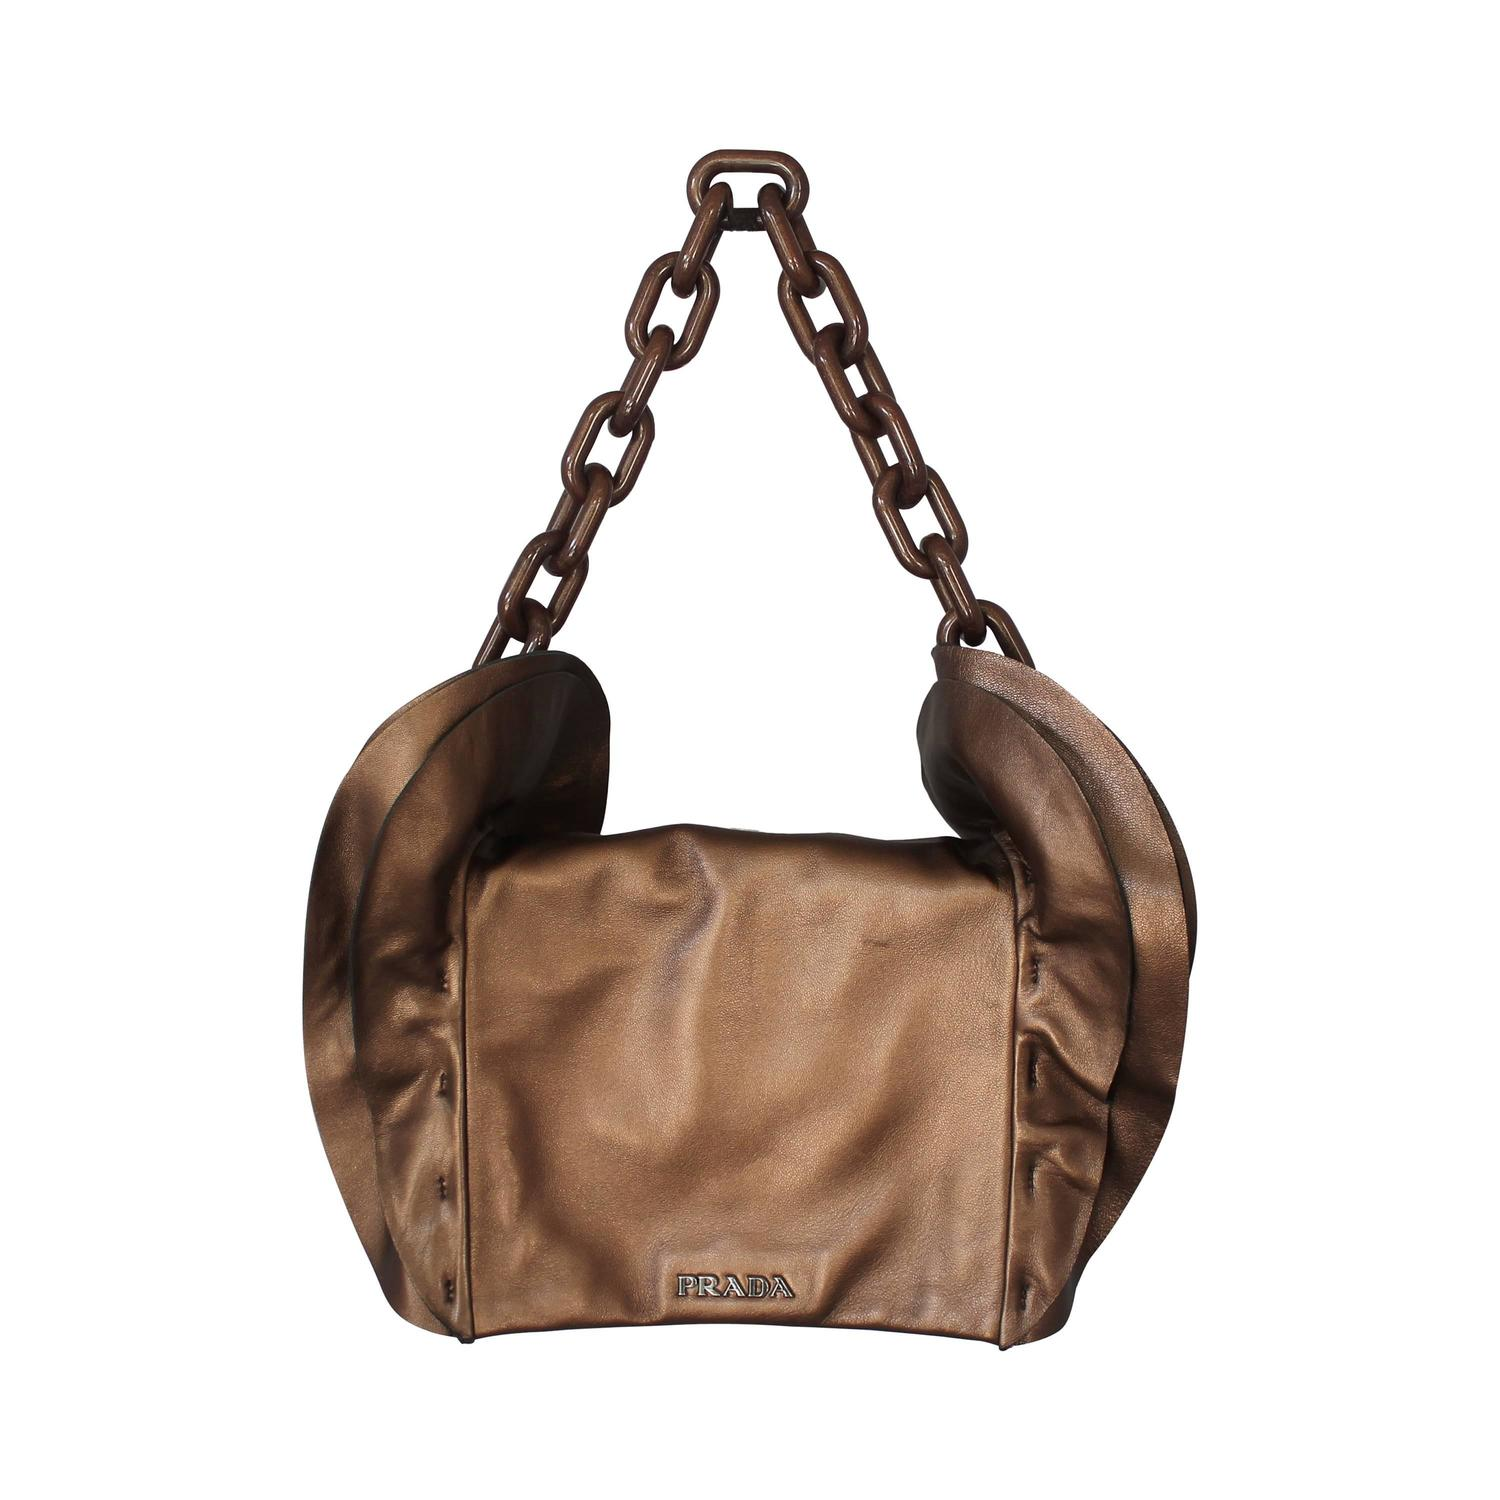 Vintage Prada Top Handle Bags - 26 For Sale at 1stdibs